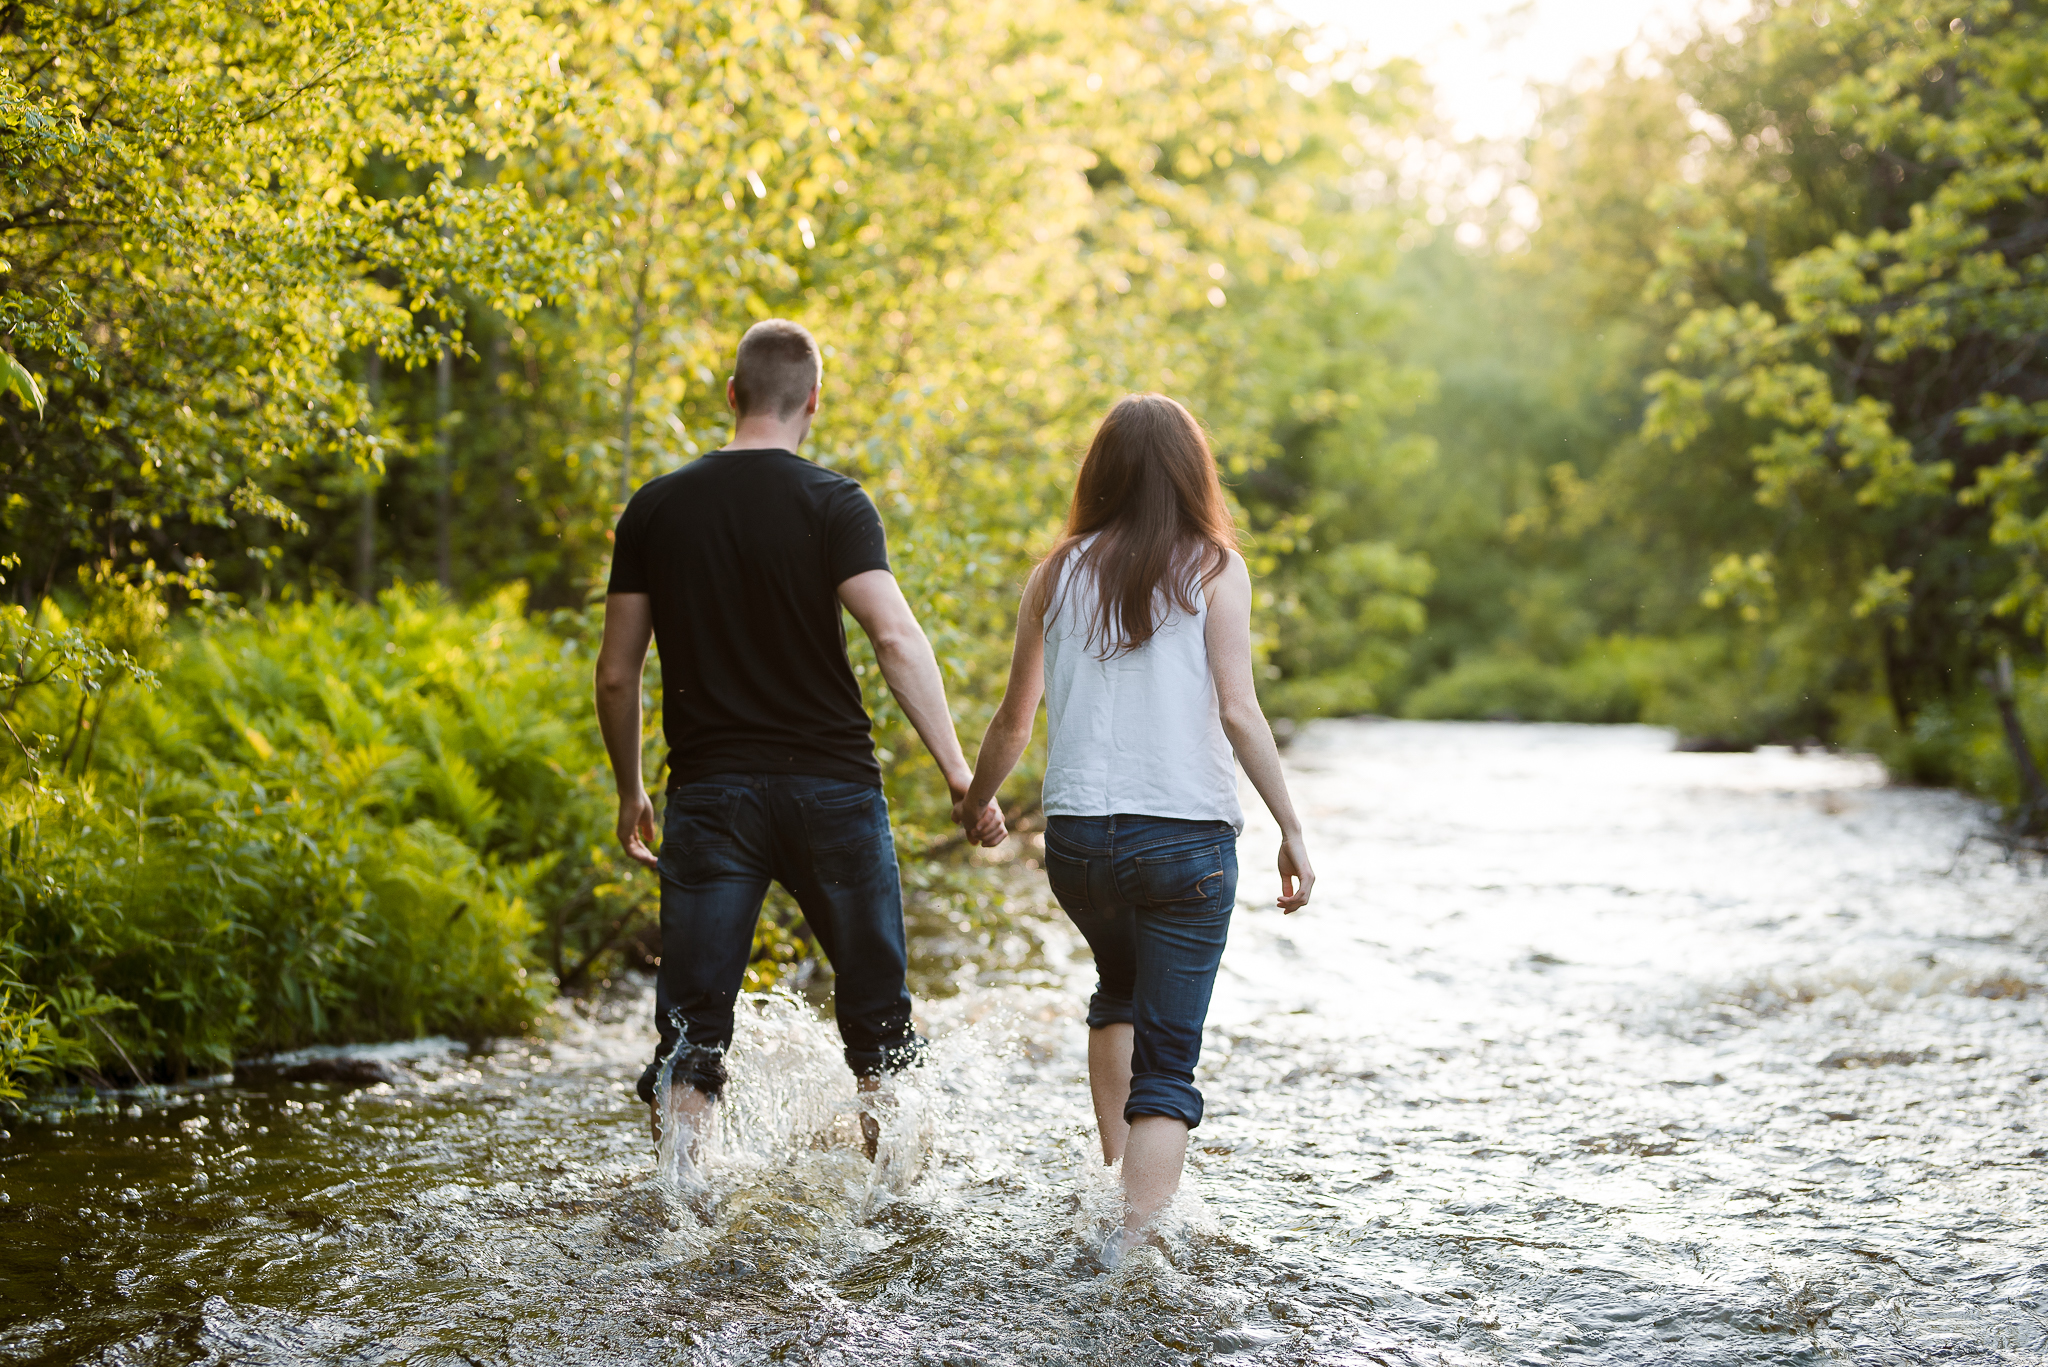 Couples457NaomiLuciennePhotography062019-Edit.jpg